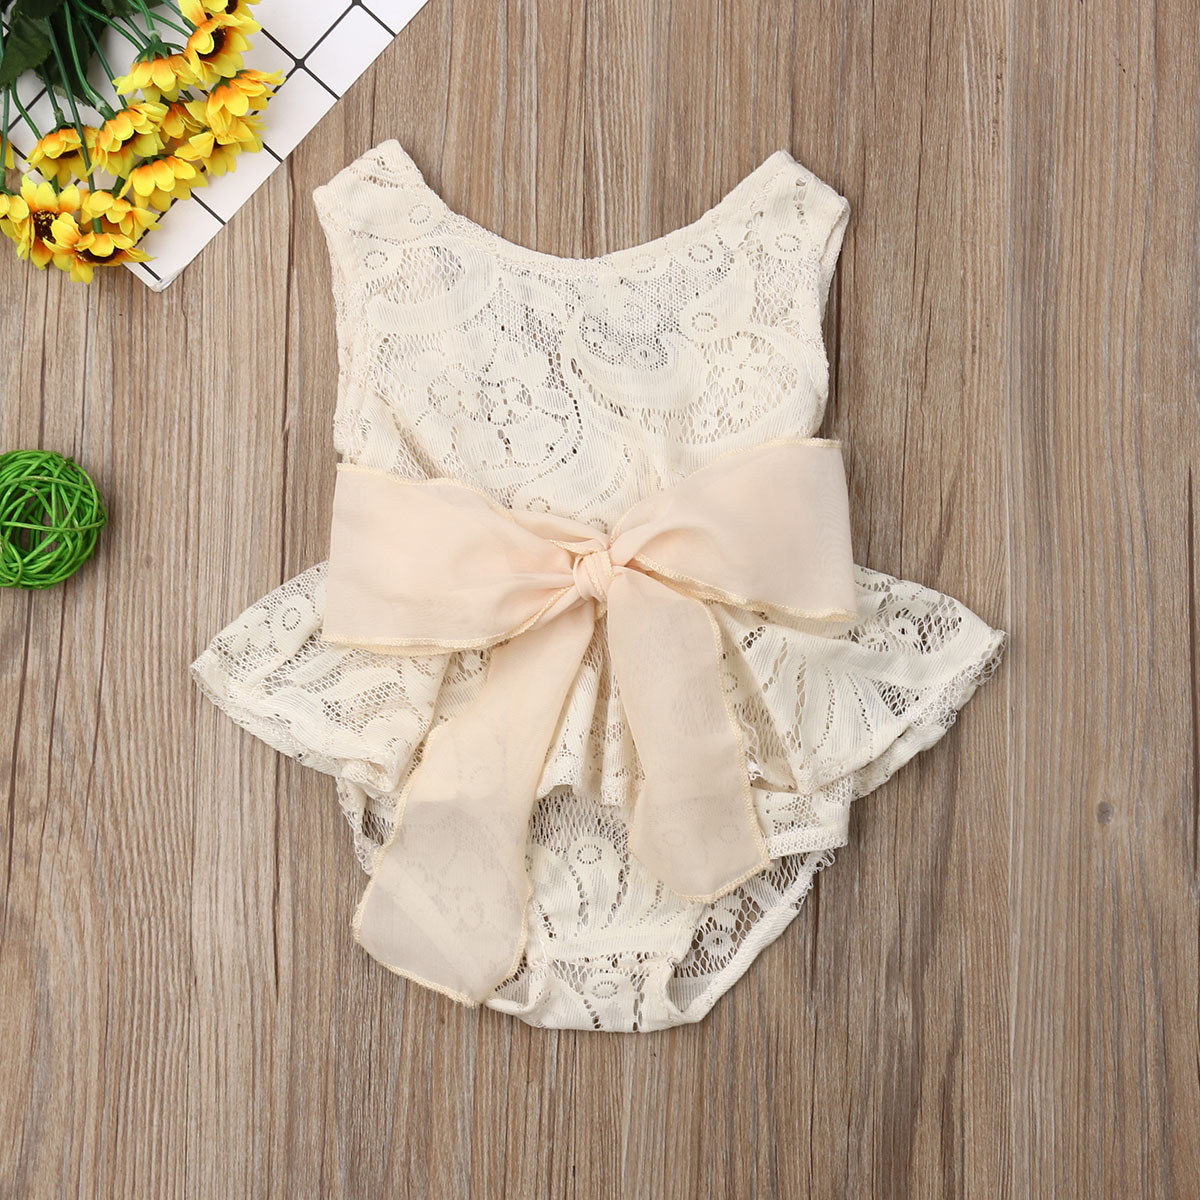 Pudcoco Summer Newborn Baby Girl Clothes Sleeveless Solid Color Lace Flower Ruffle Bowknot Romper One-piece Outfit Sunsuit